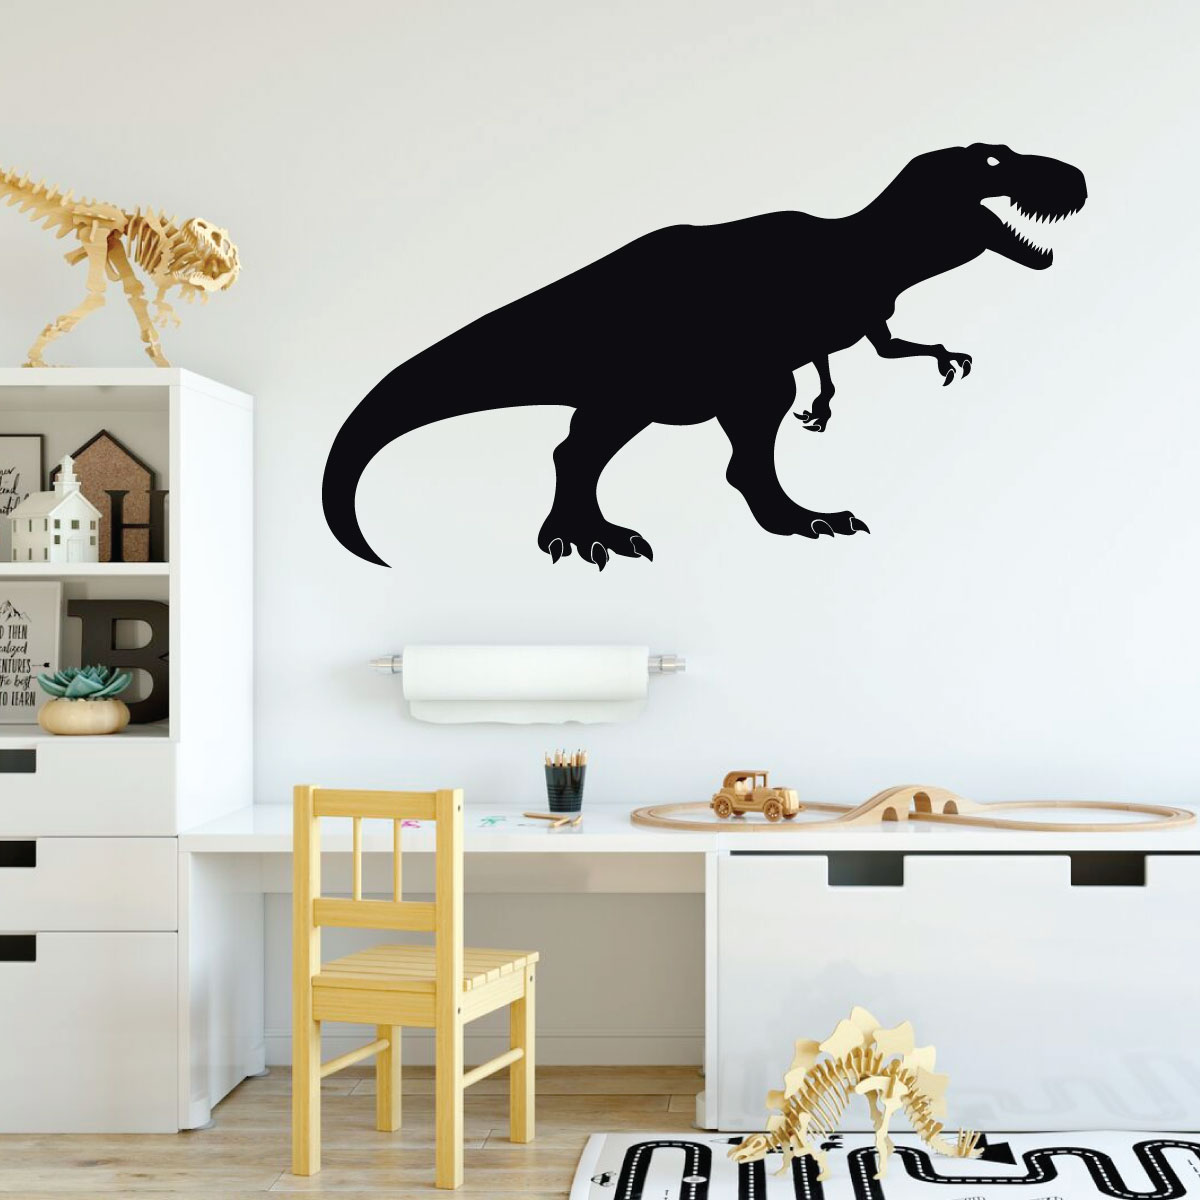 Large Dinosaur Decal T-Rex Name Wall Decal Kids Teen and Nursery Wall Decor Dinosaur DECAL ~ Large TREX Dinosaur Wall Decal